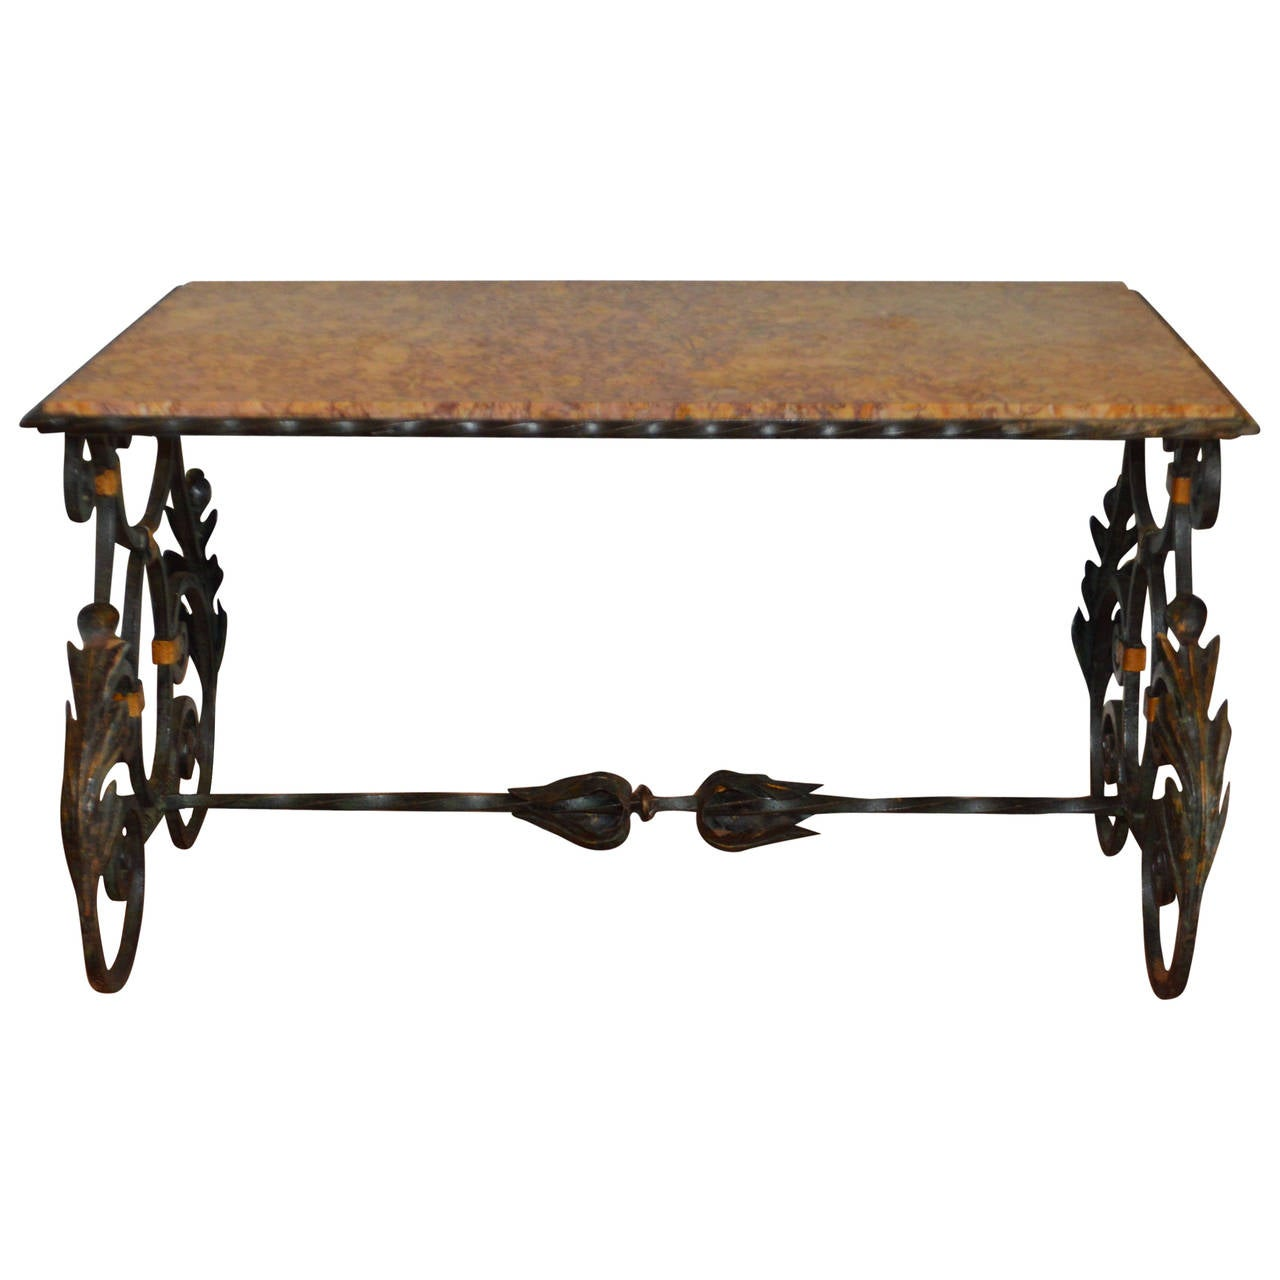 Belle Epoque Wrought Iron Coffee Table With Marble Top At 1stdibs